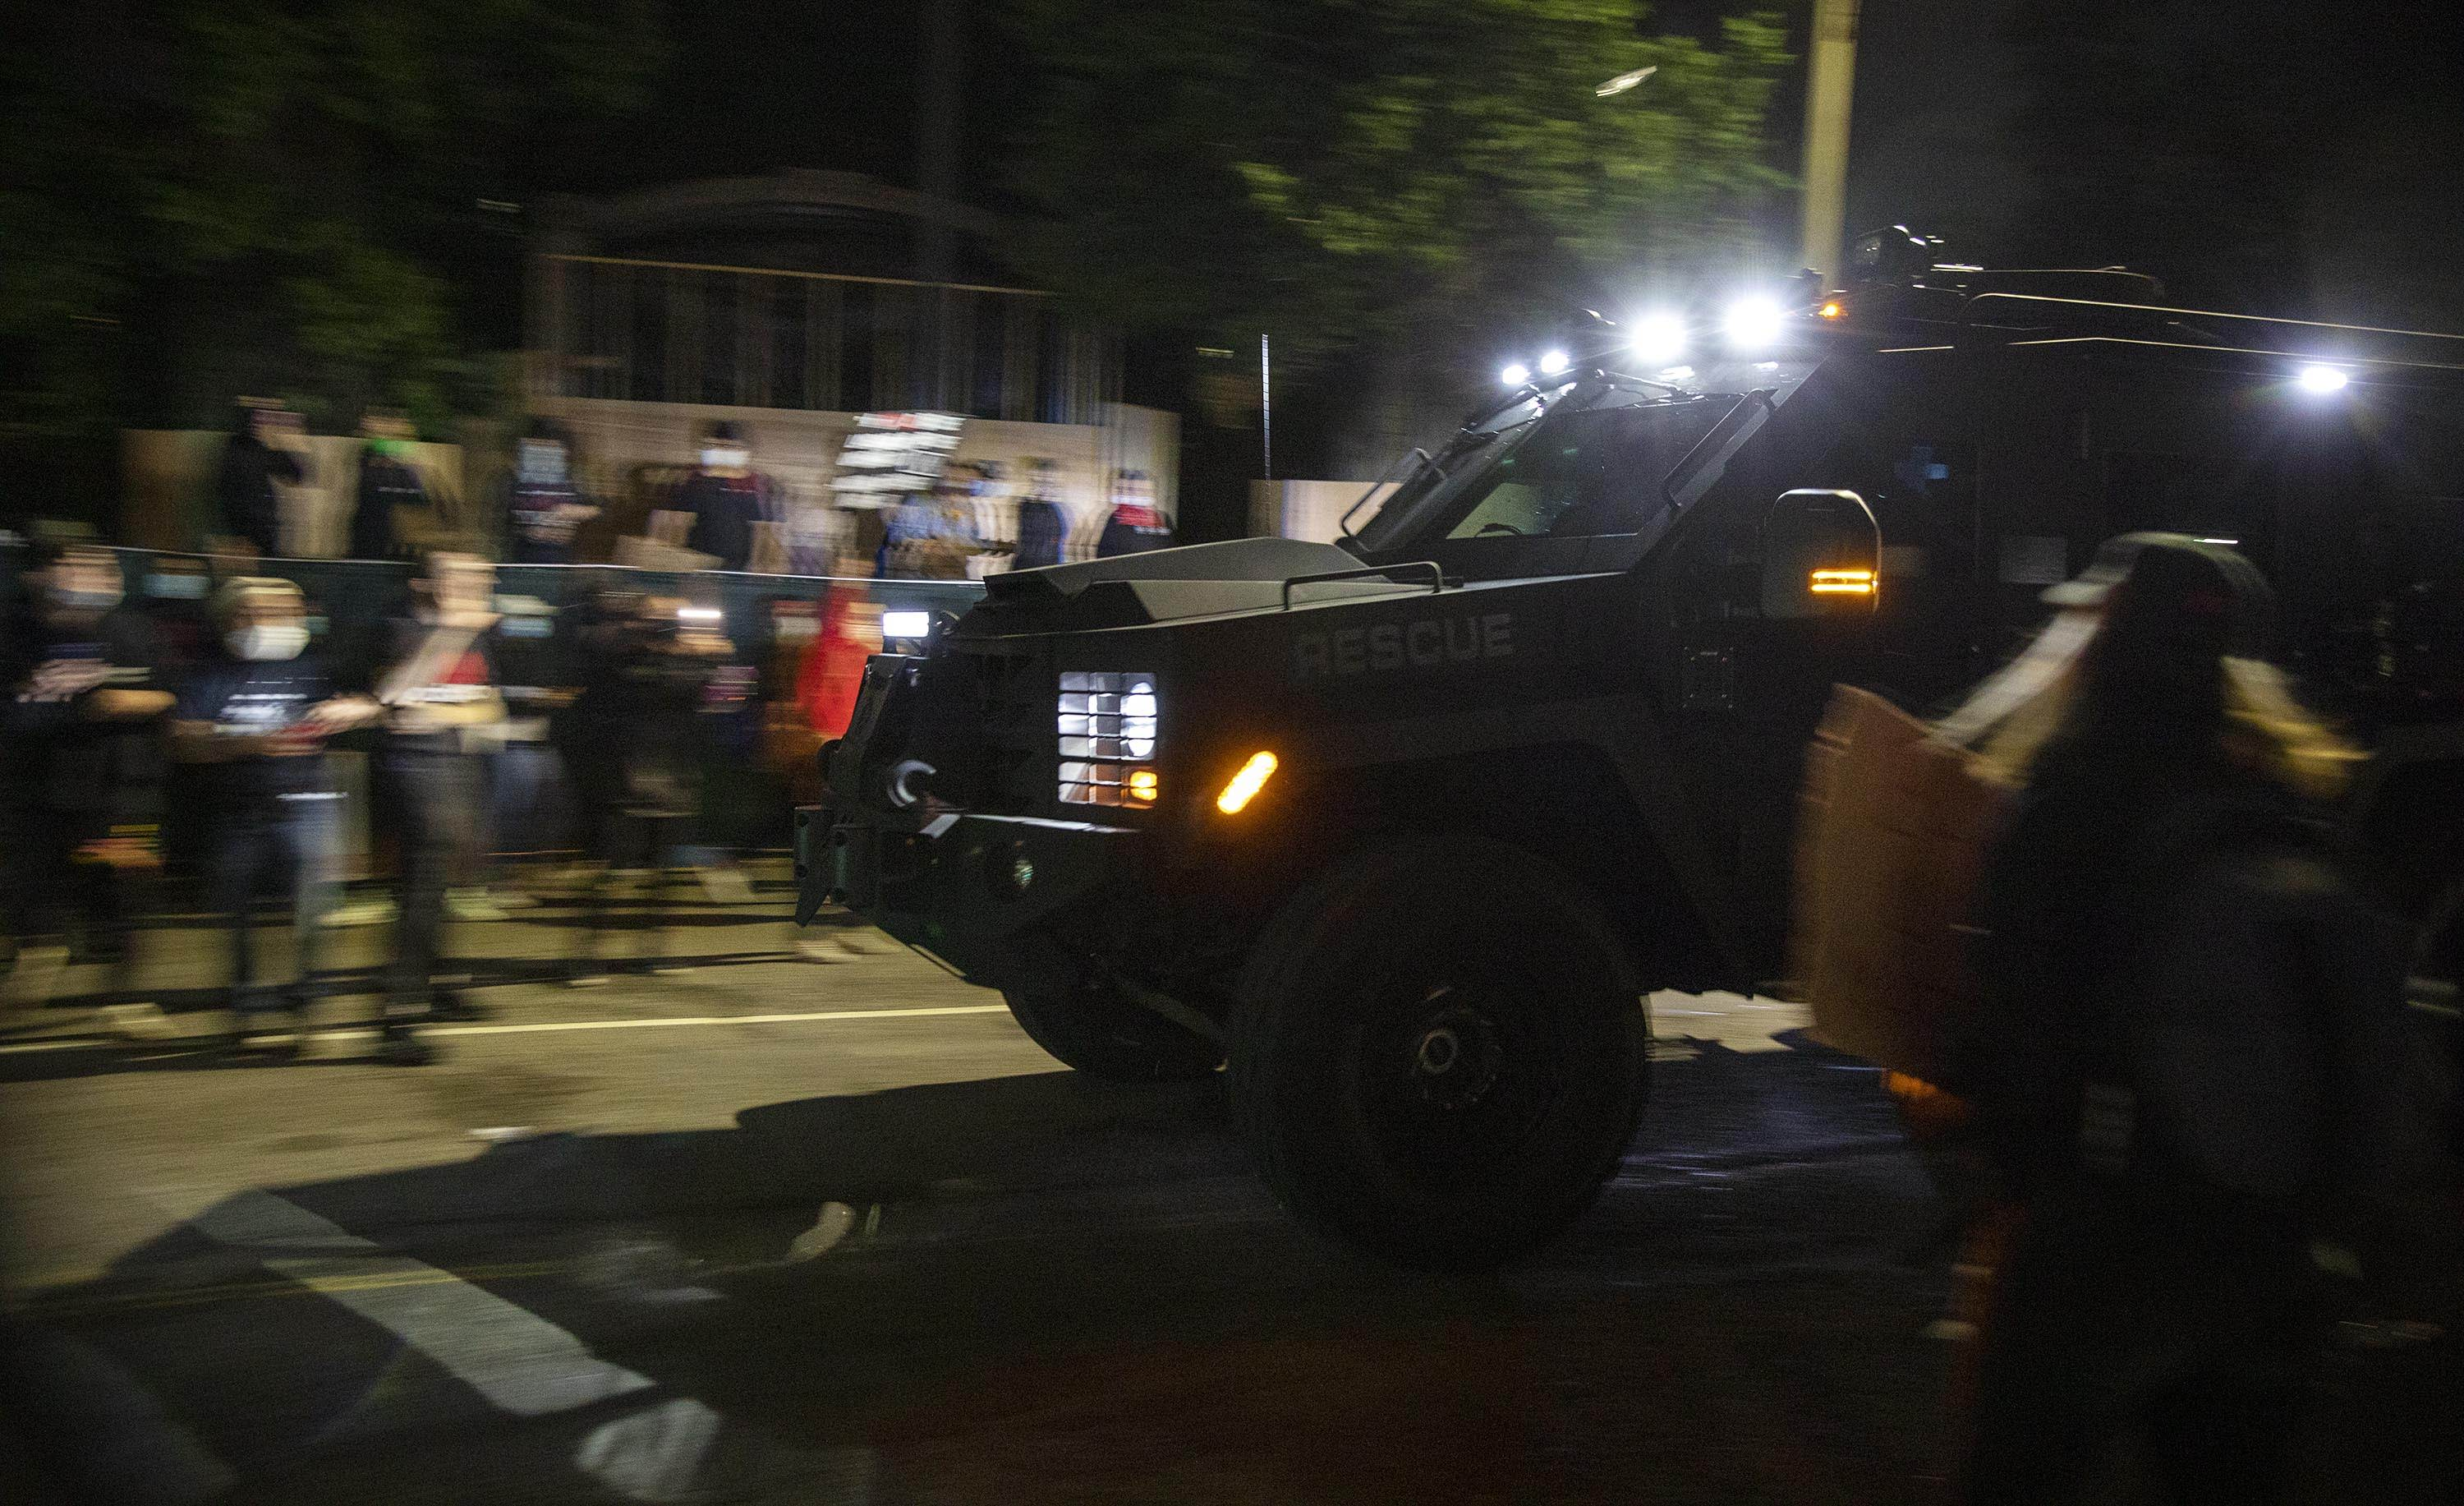 An armored police vehicle drove past the State House as protesters dispersed on May 31. (Robin Lubbock/WBUR)